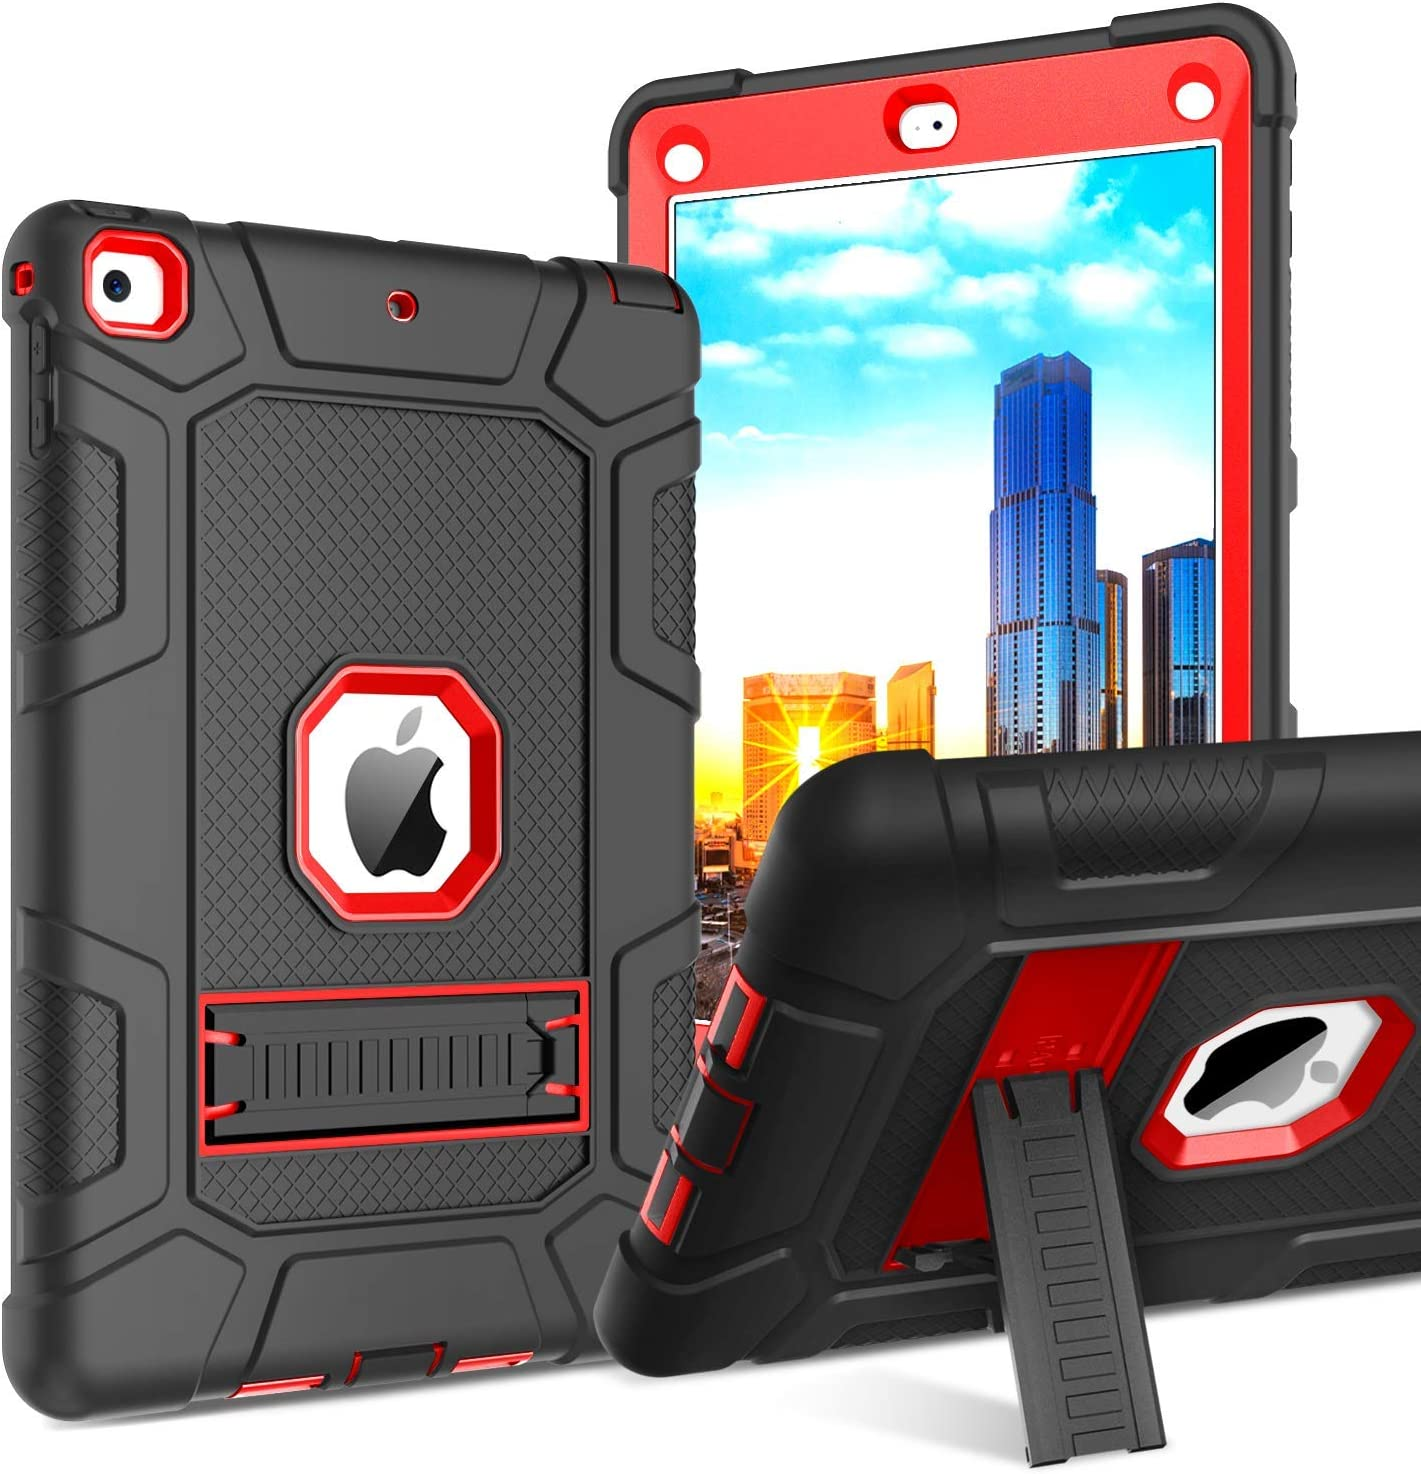 iPad 6th Generation Case, iPad 5th Gen Case, BENTOBEN 3 in 1 Heavy Duty Hybrid Soft Silicone Hard Plastic Cover with Kickstand Rugged Shockproof Protective Case for iPad 2018/2017, Black & Red